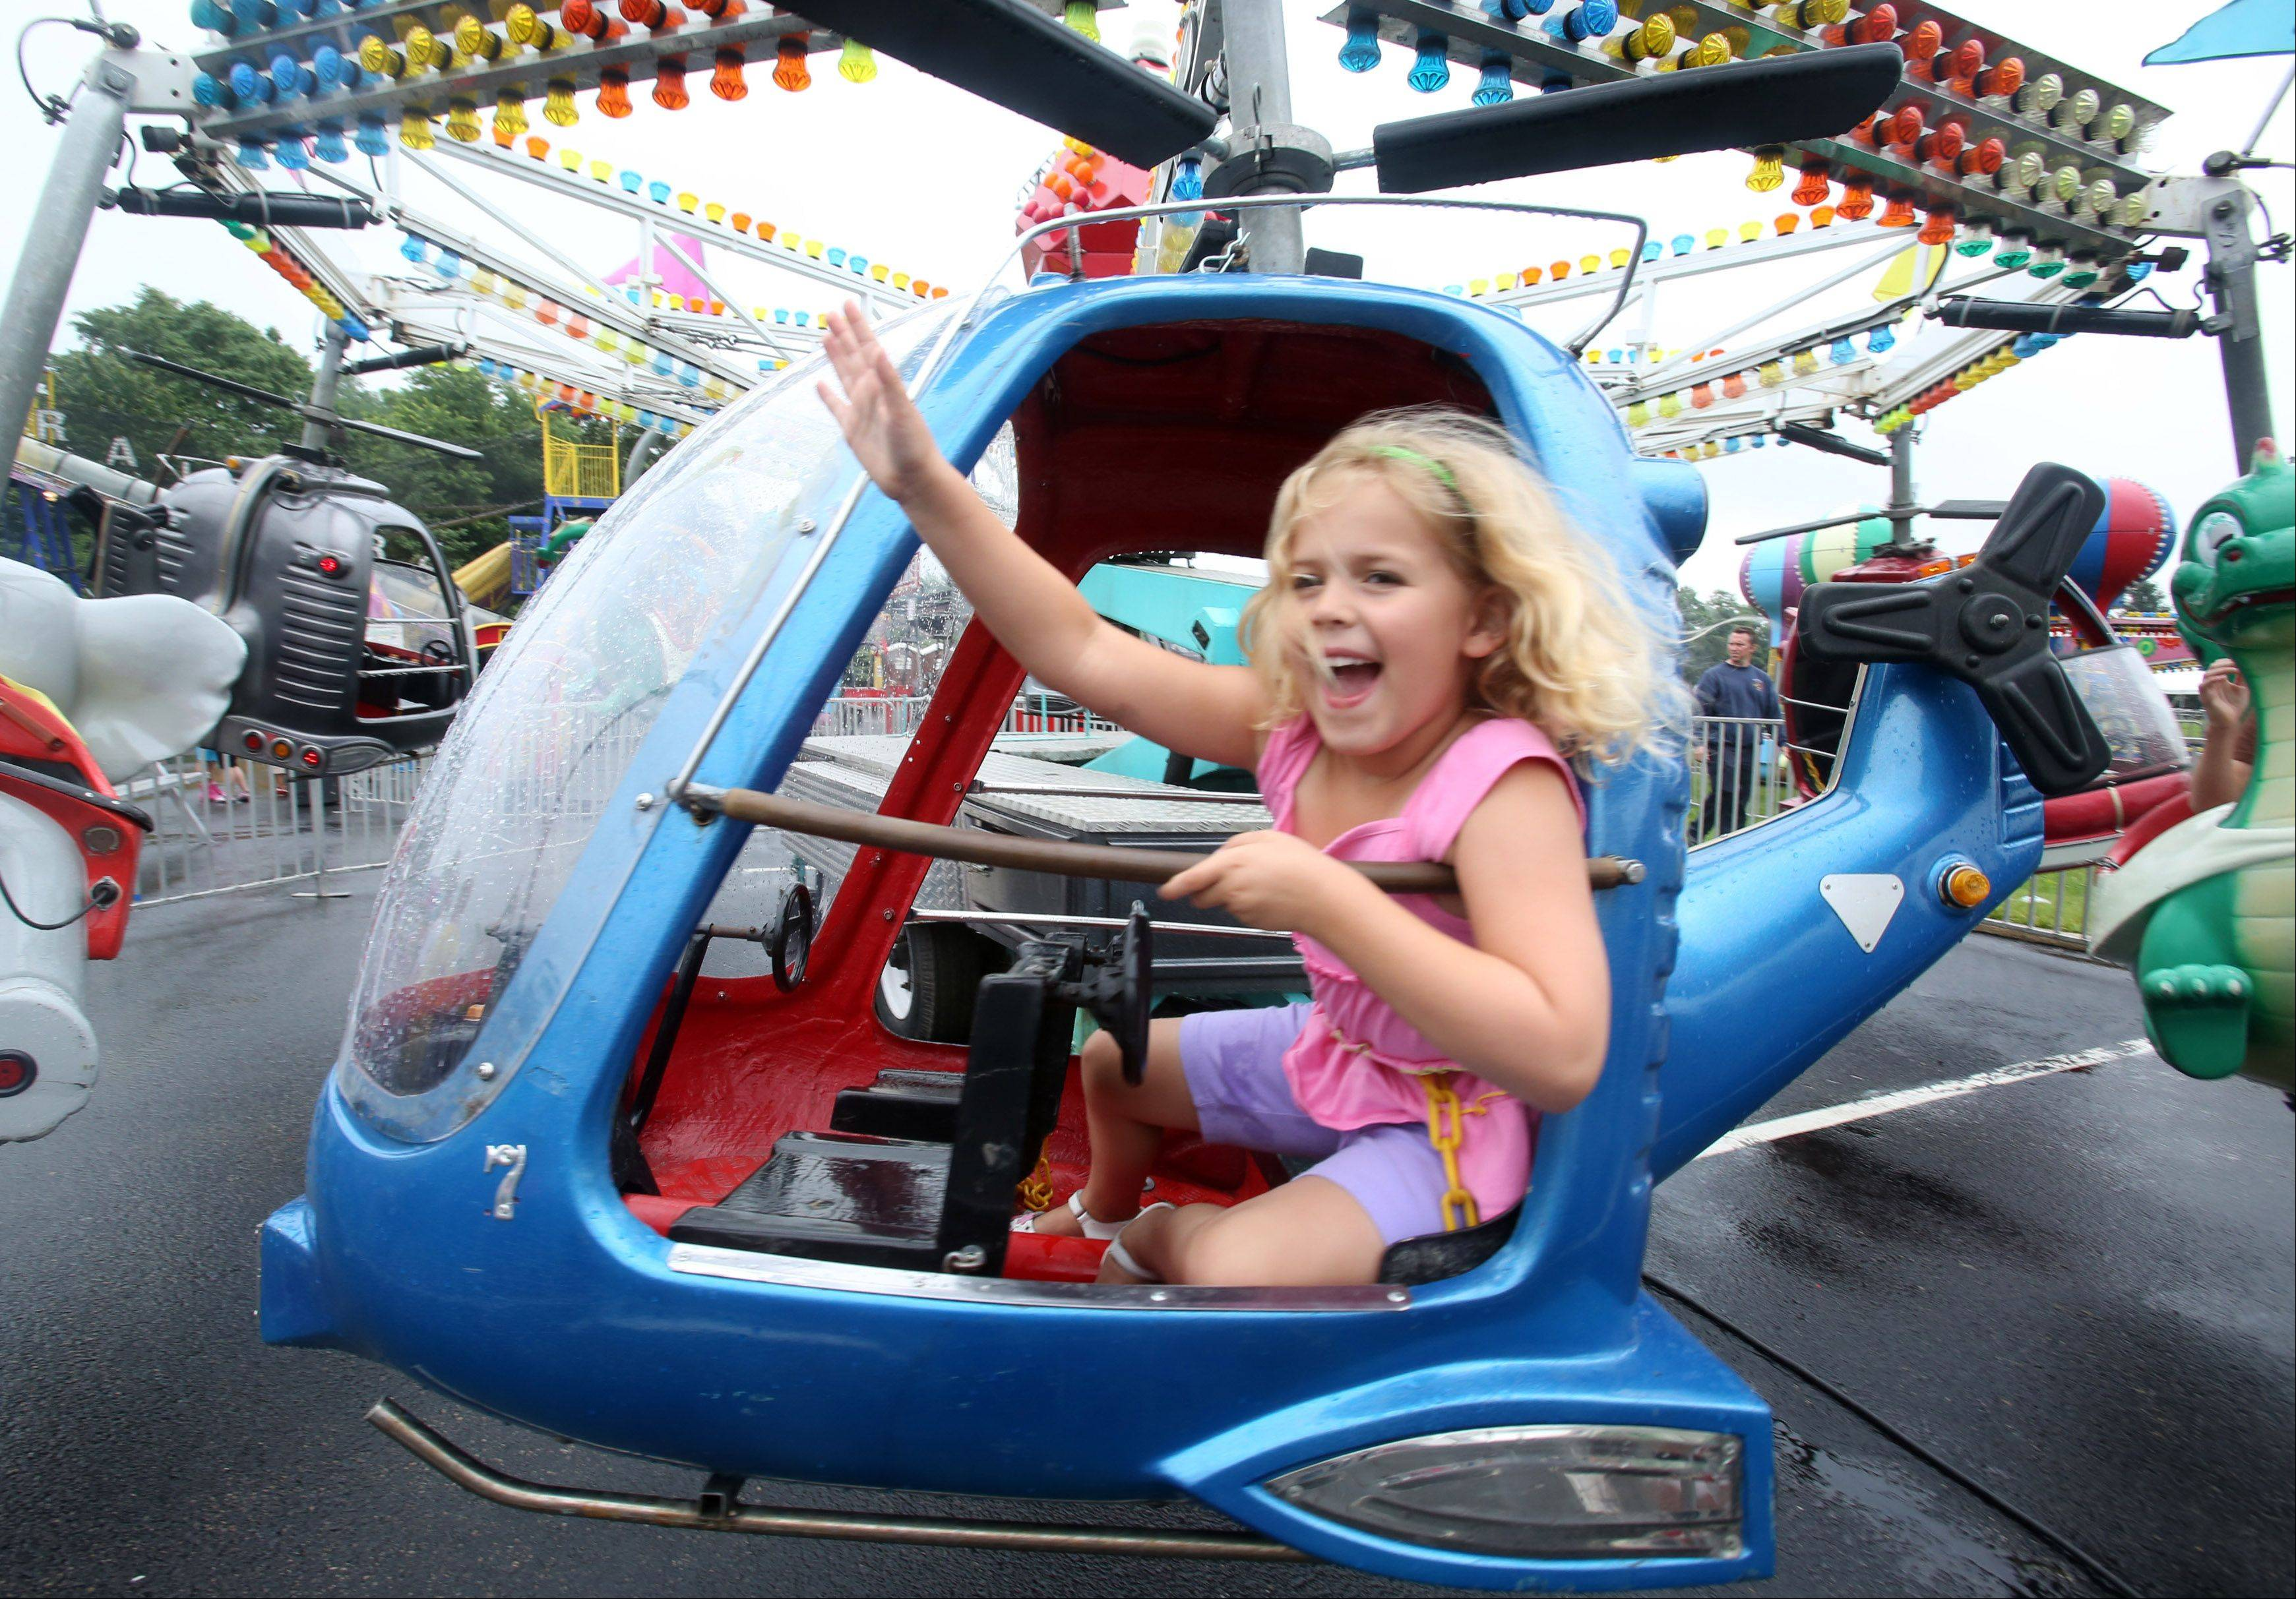 Savah Blume, 6, of Palatine waves to her brother, Kevin, 9, and her mother, Julie, as she rides the helicopter Wednesday, the opening day of Palatine Jaycees' 56th annual Hometown Fest.